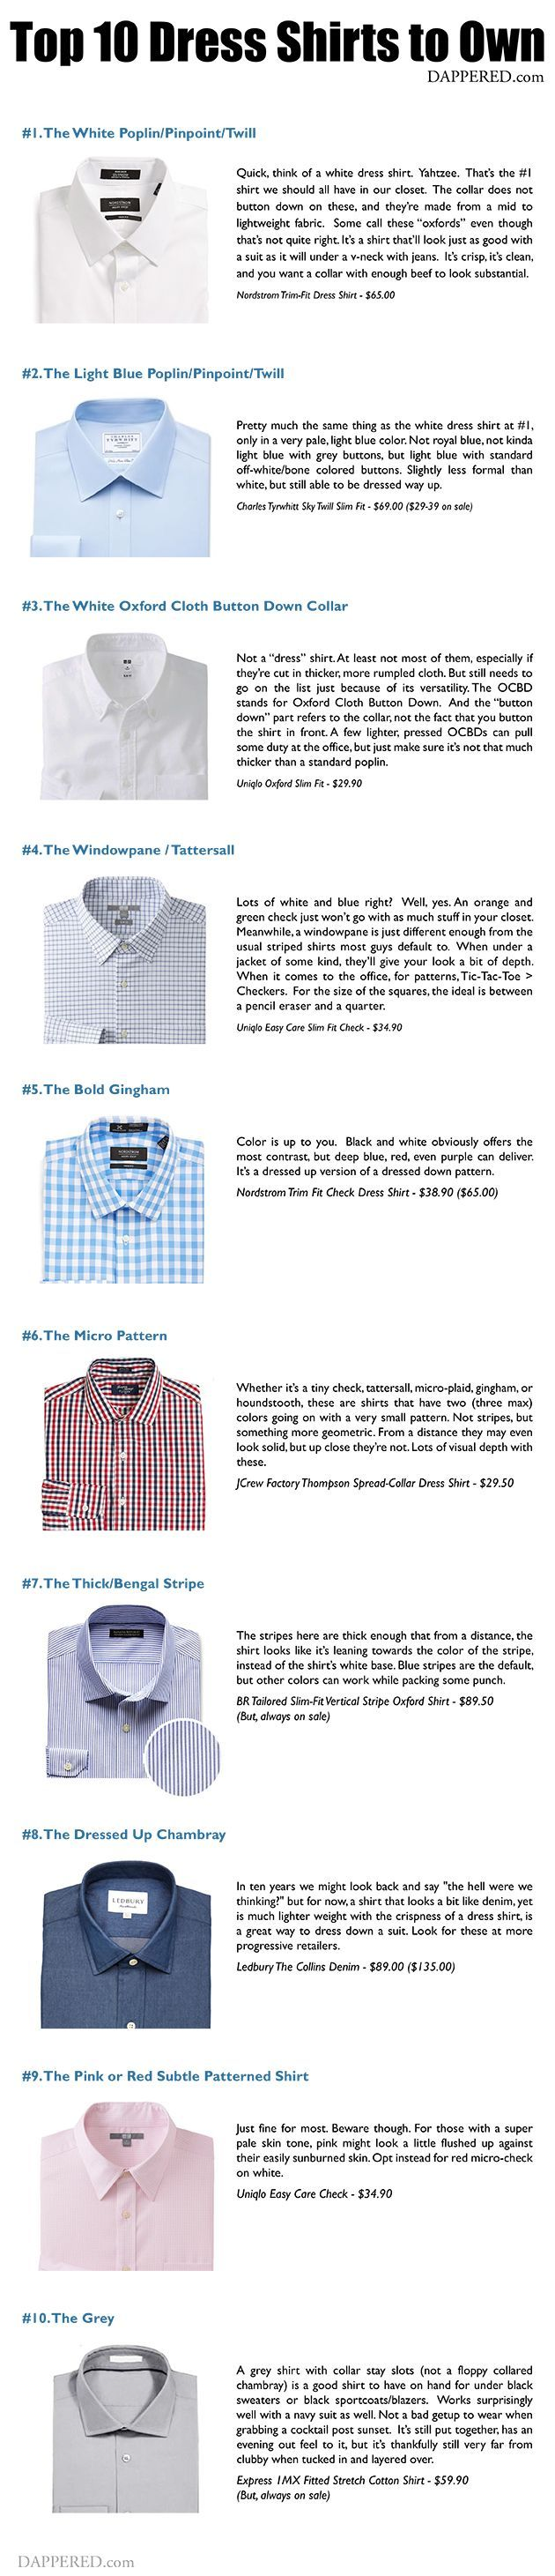 Types of Dress Shirts #infografía